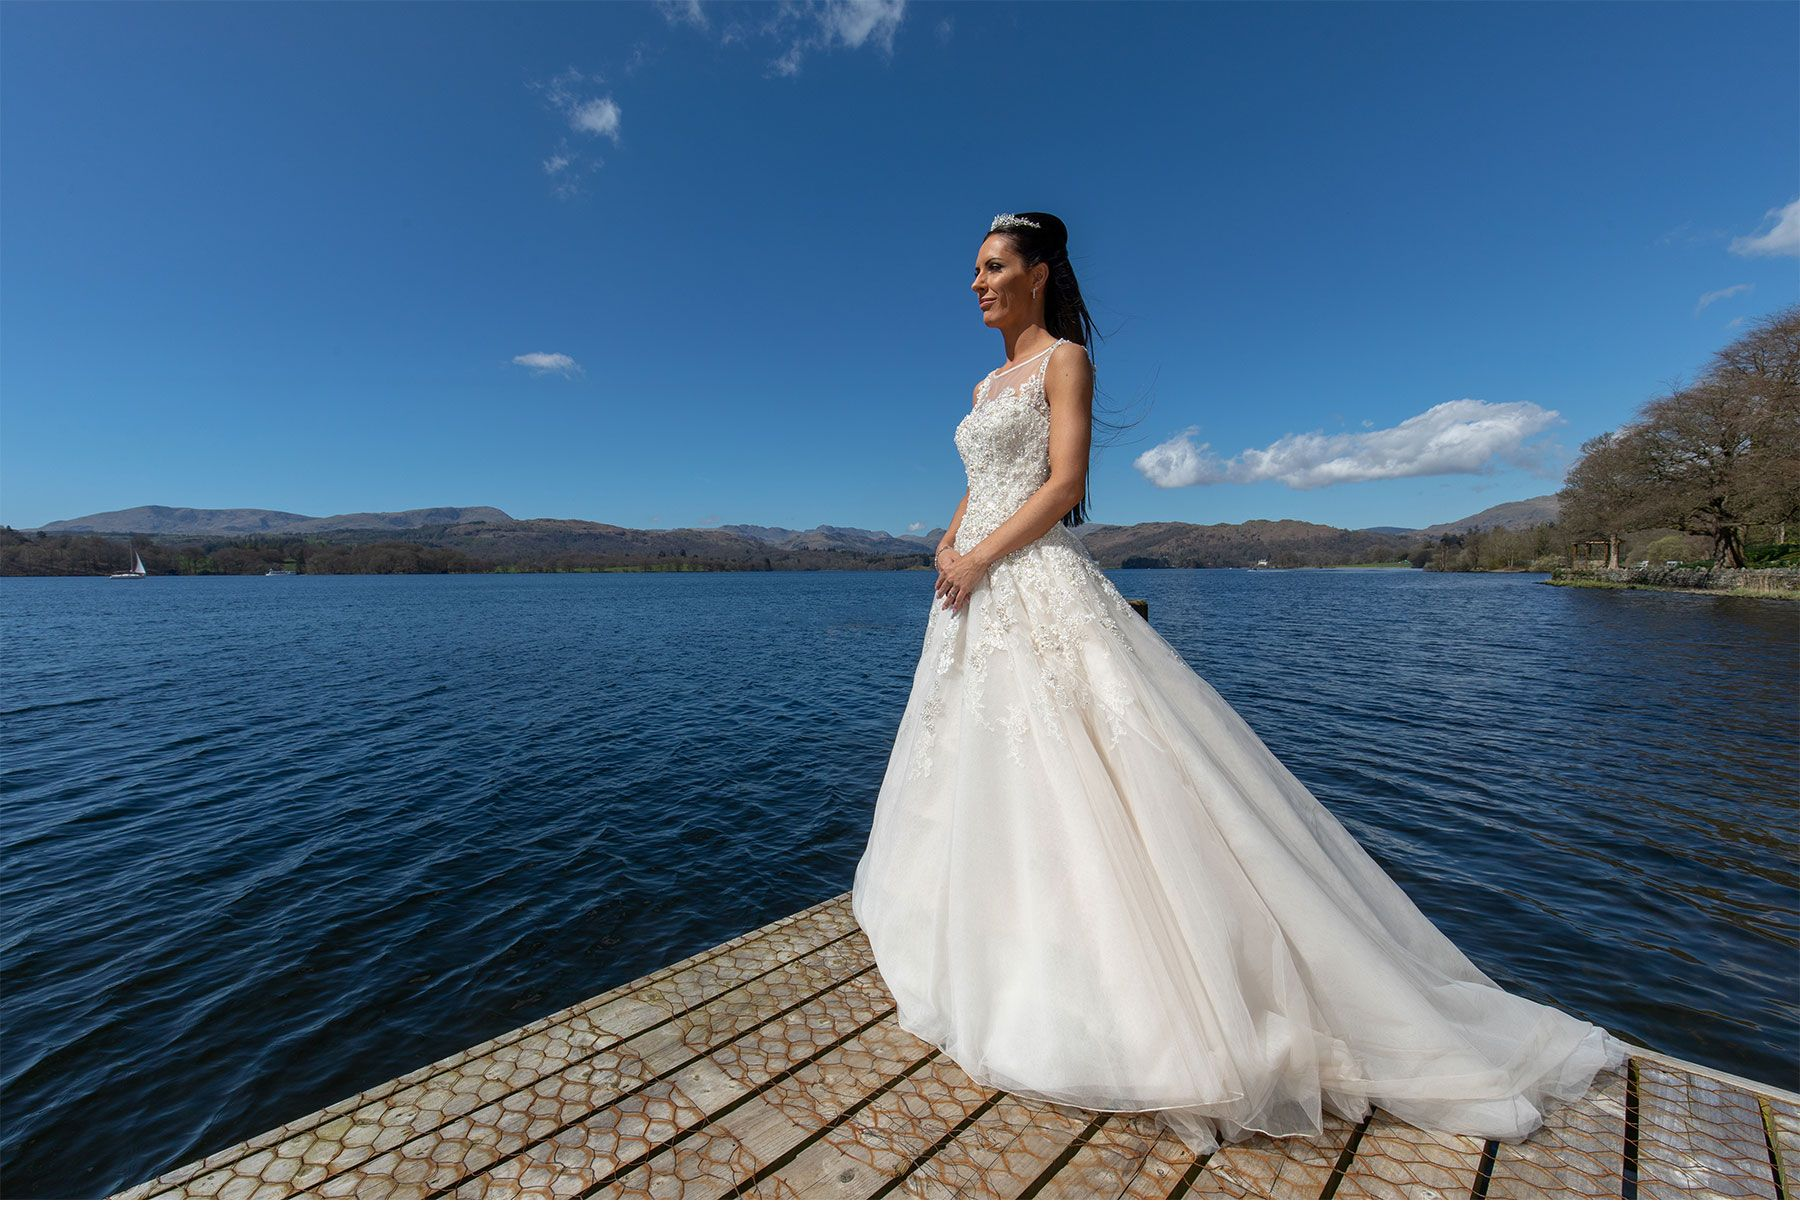 The bride set against lovely blue sky on the jetty of Lake Windermere